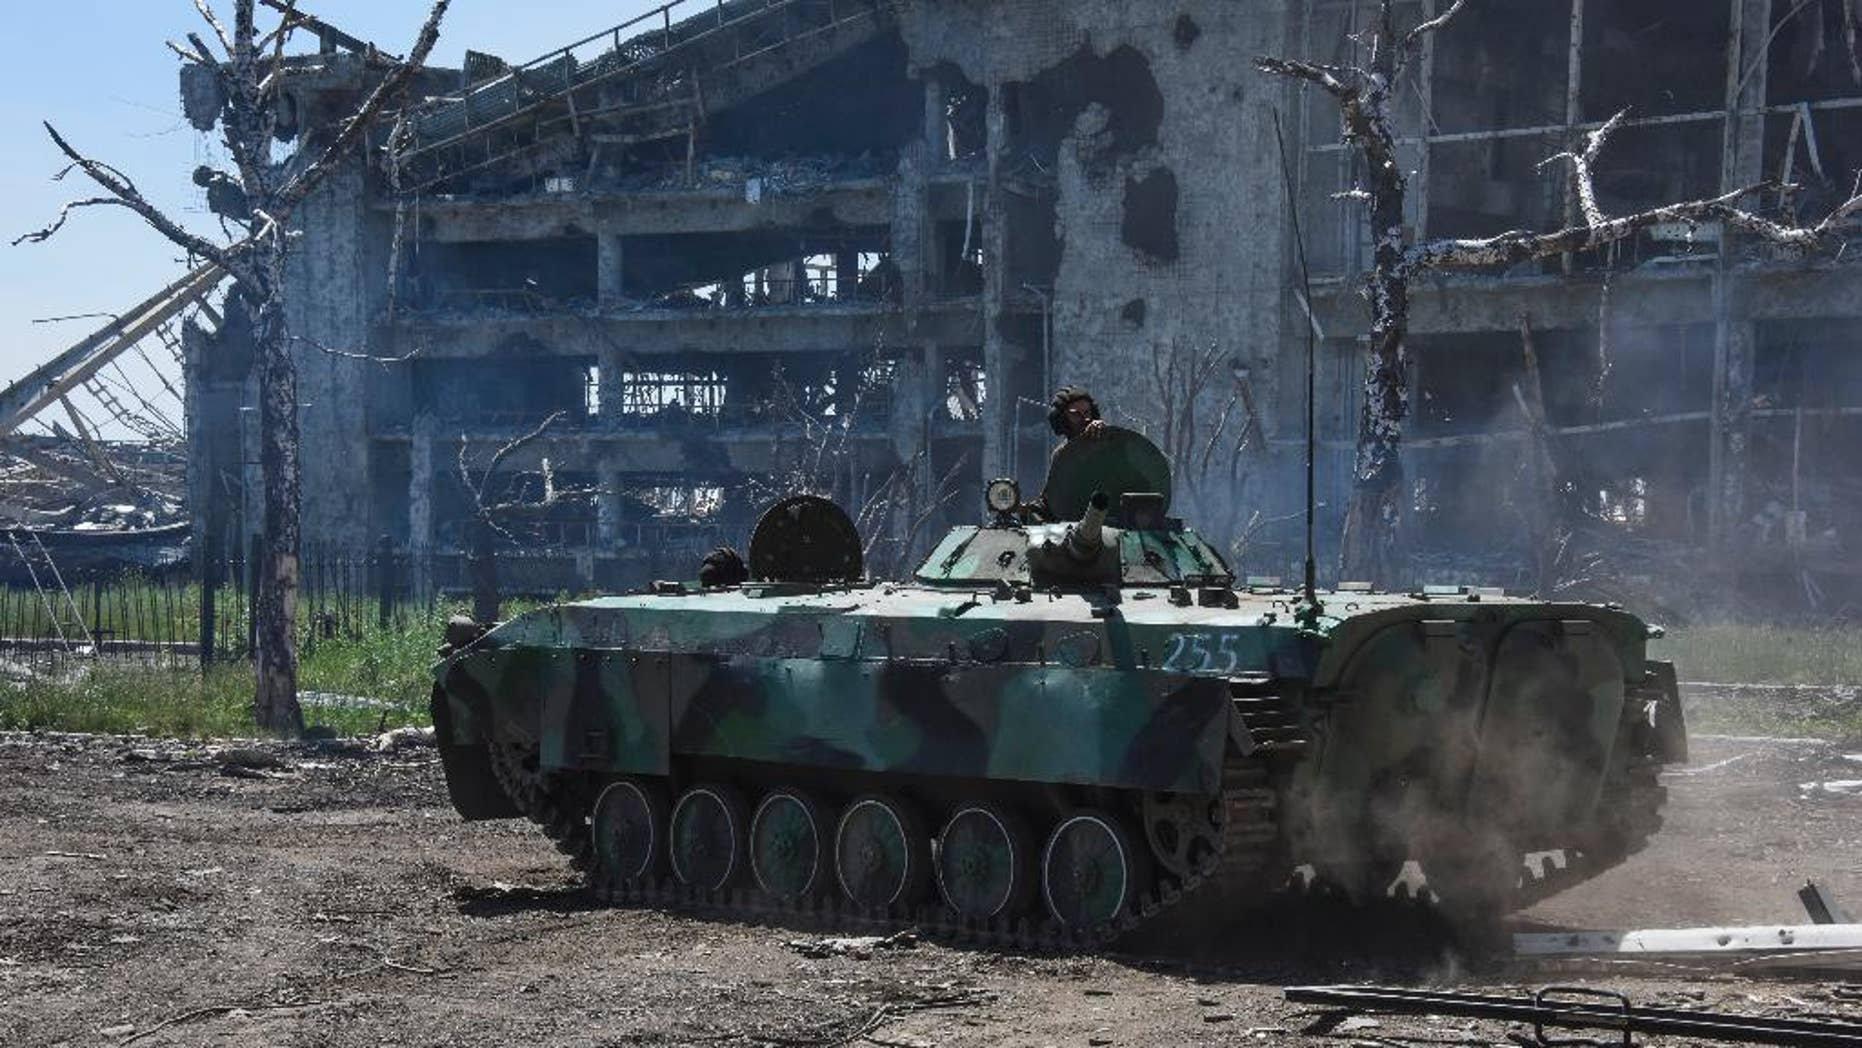 A Russia-backed armoured personnel carrier makes its way near positions at the destroyed building of Donetsk Airport just outside Donetsk, eastern Ukraine, Tuesday, June 9, 2015. Heavy fighting continue at the frontline at the airport of Donetsk. (AP Photo/Mstyslav Chernov)